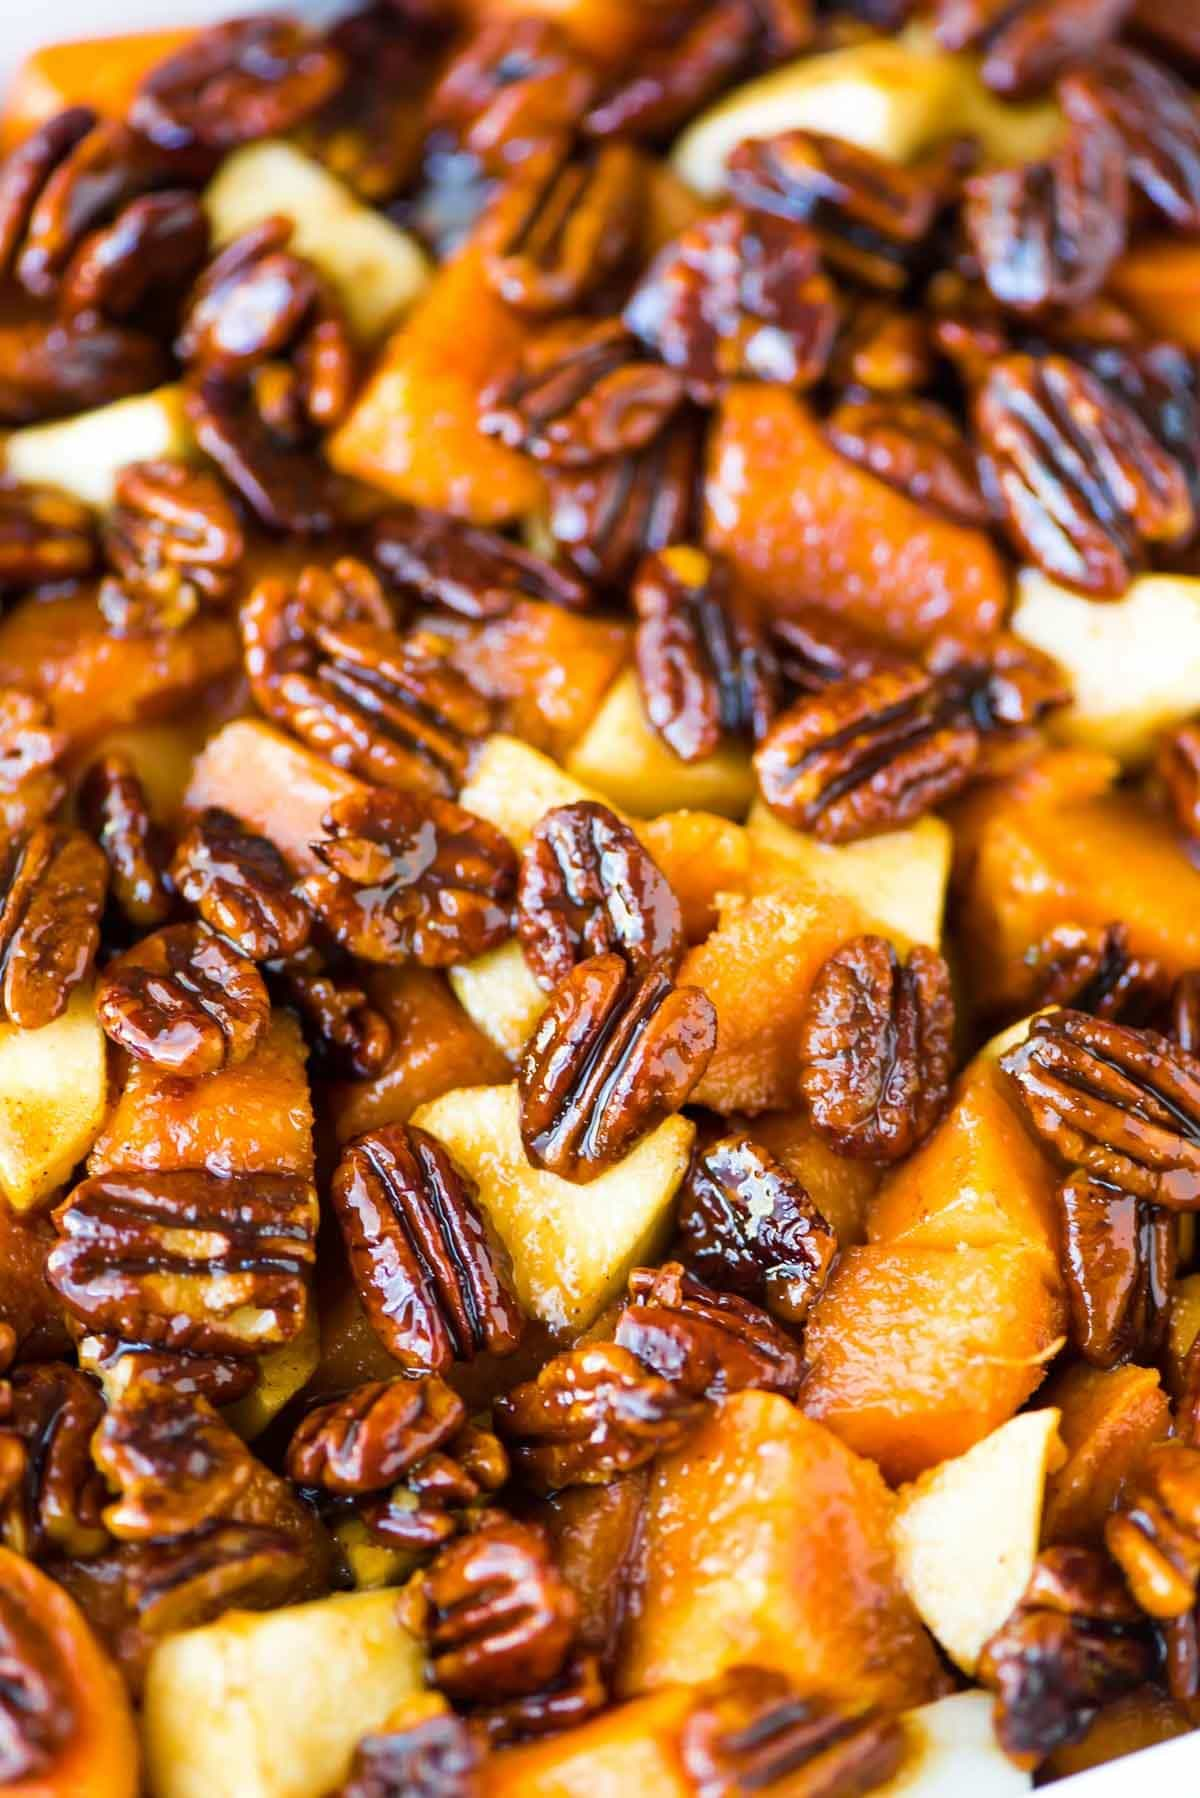 Glazed Sweet Potatoes with Honey Pecans. Sweet potatoes and apples, baked in a cinnamon butter whiskey sauce. Recipe at wellplated.com | @wellplated